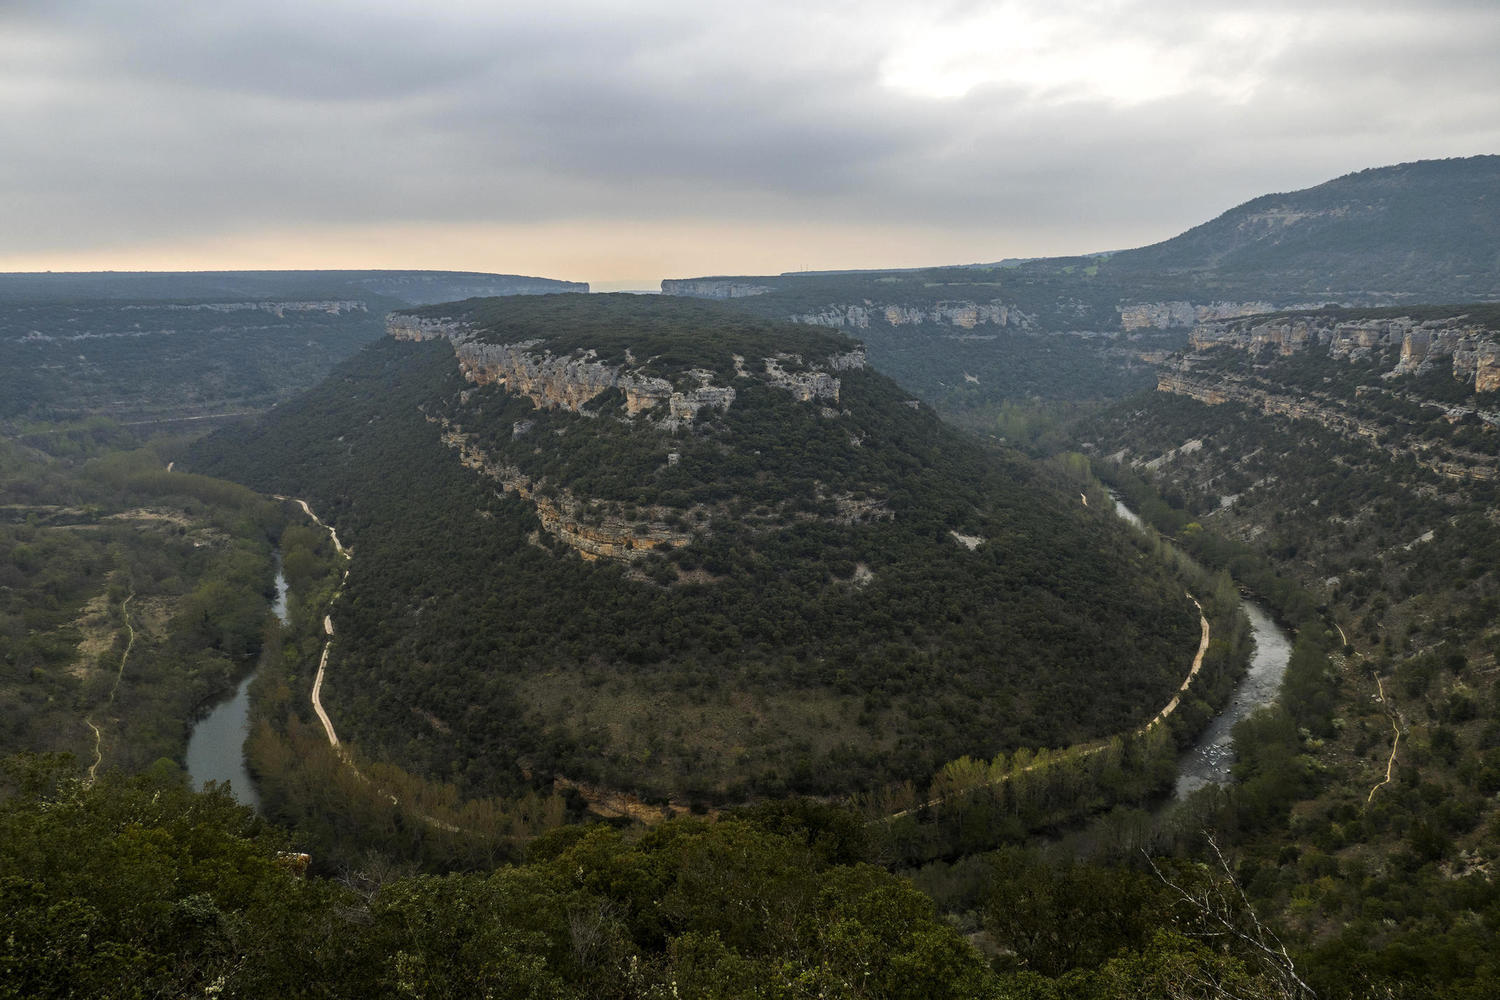 Great viewpoint over the canyon and waterway of the Ebro